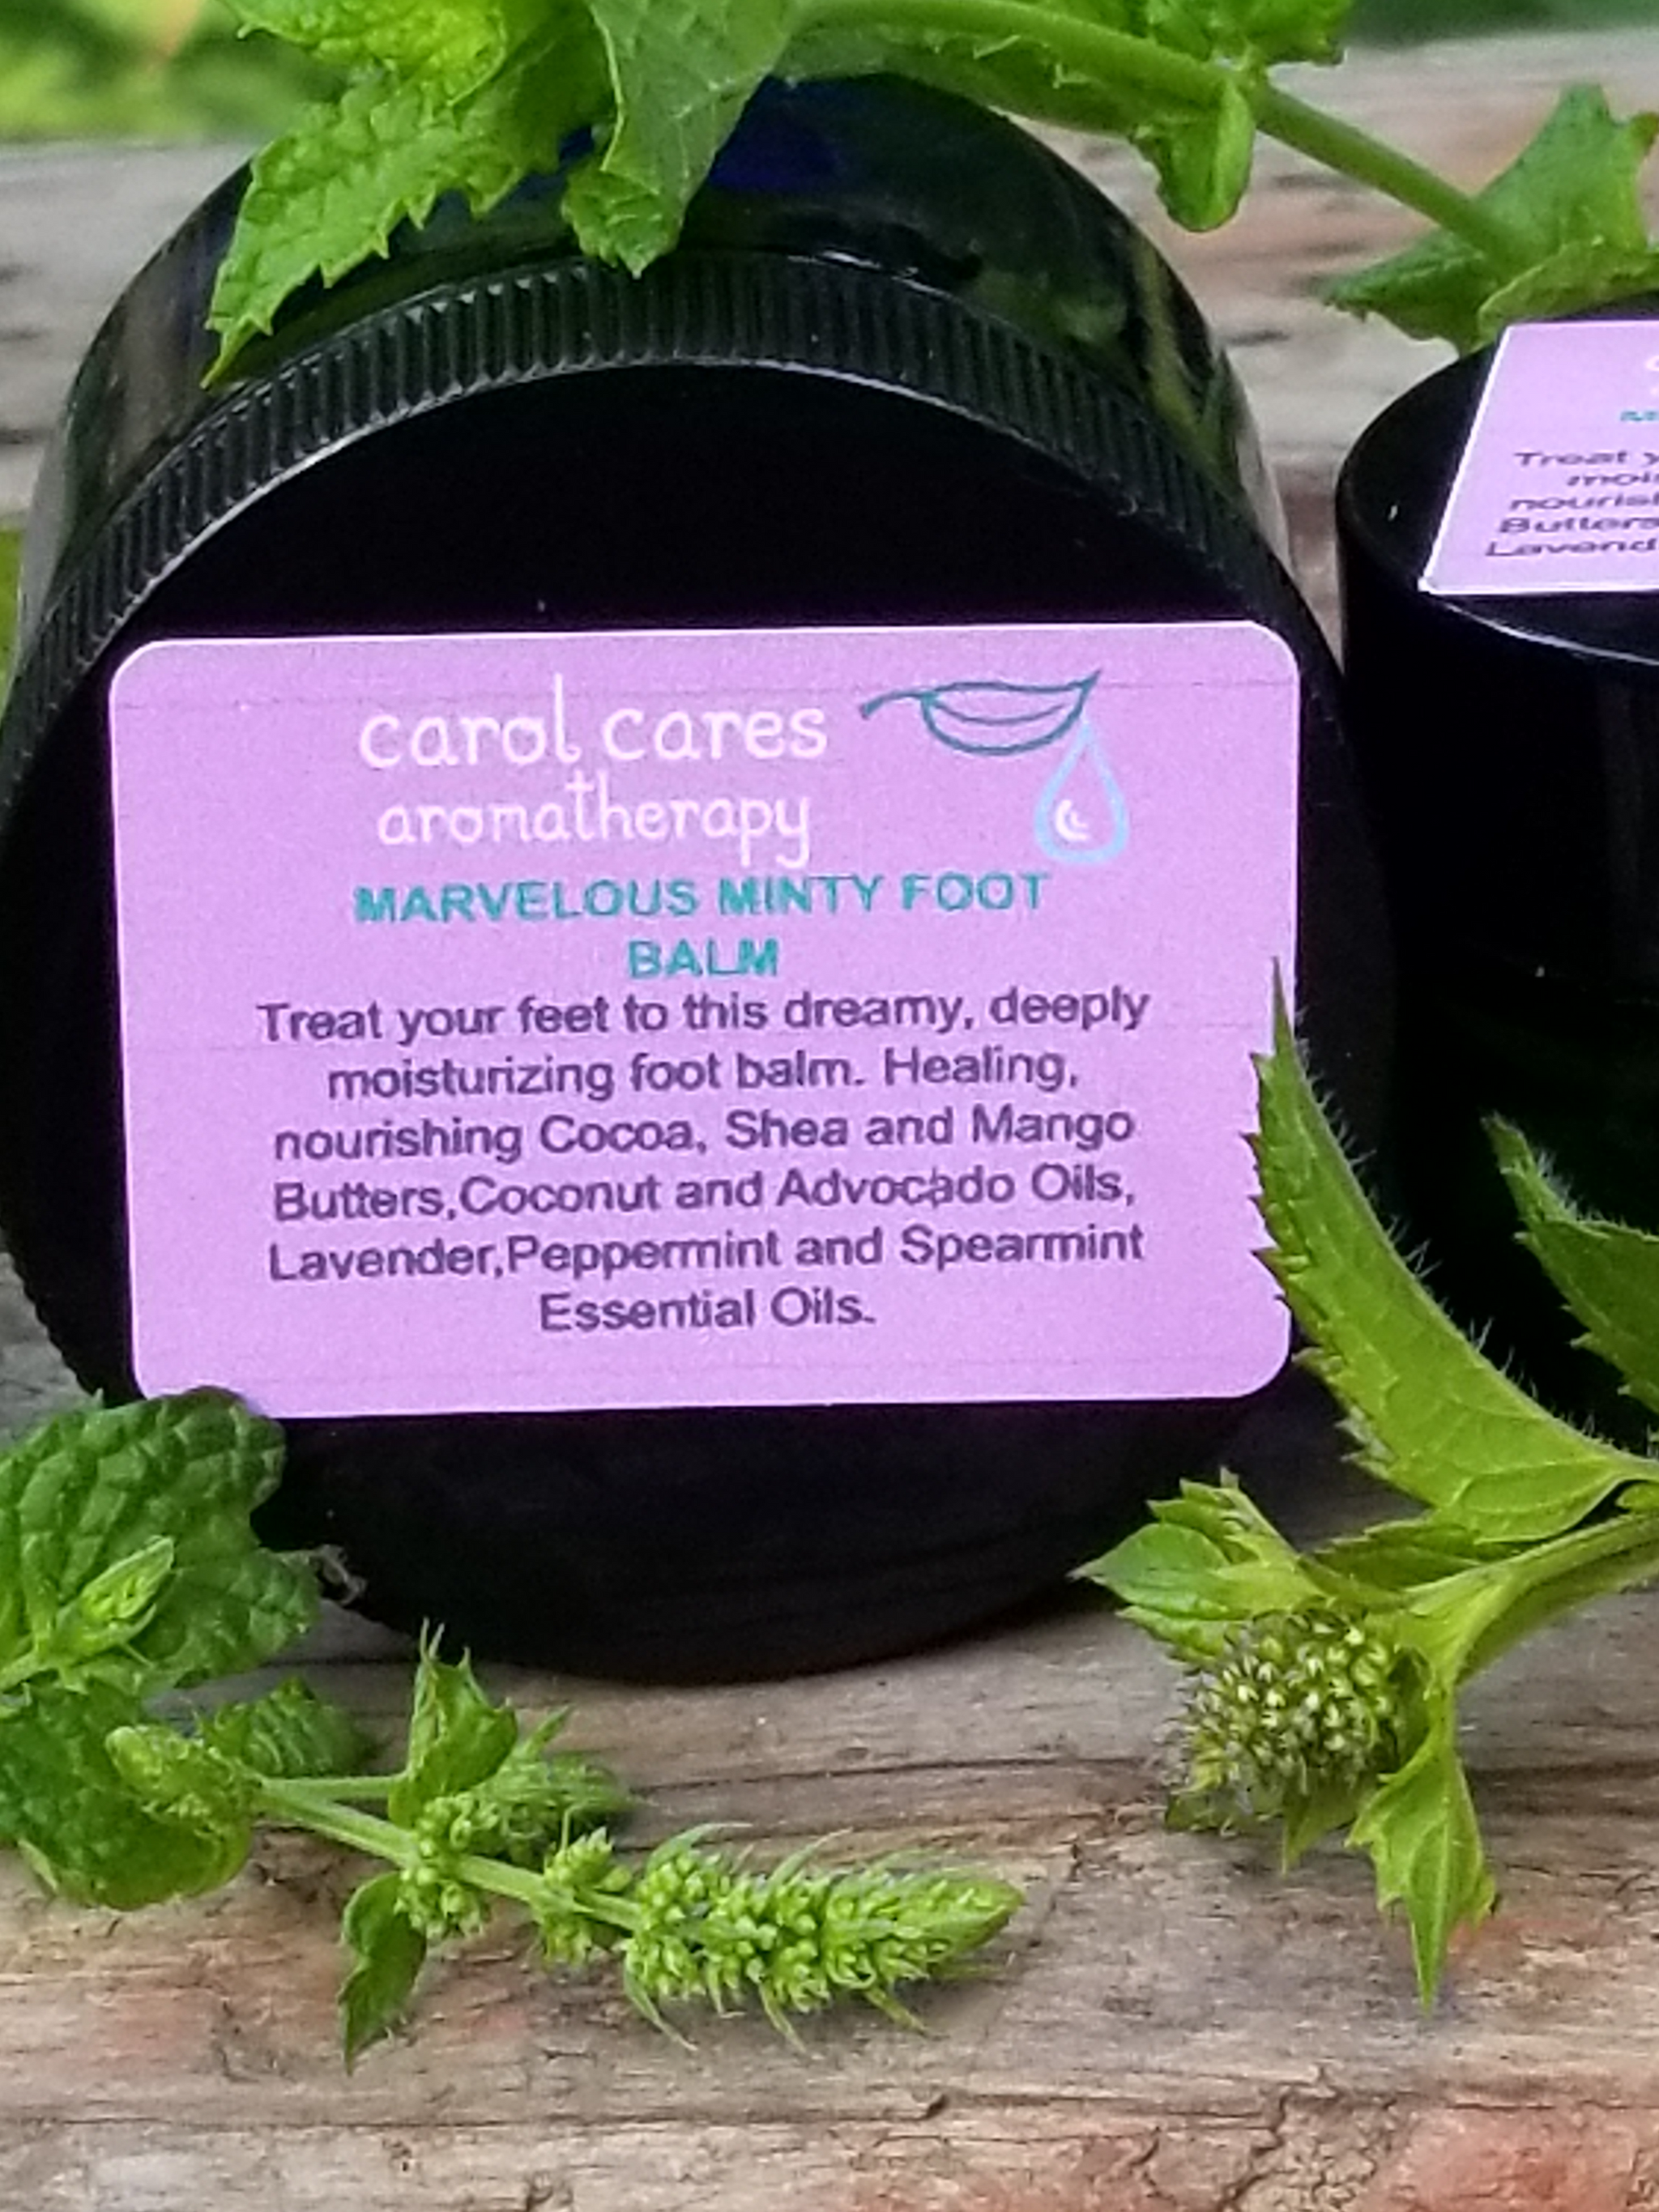 Marvelous Minty Foot Balm